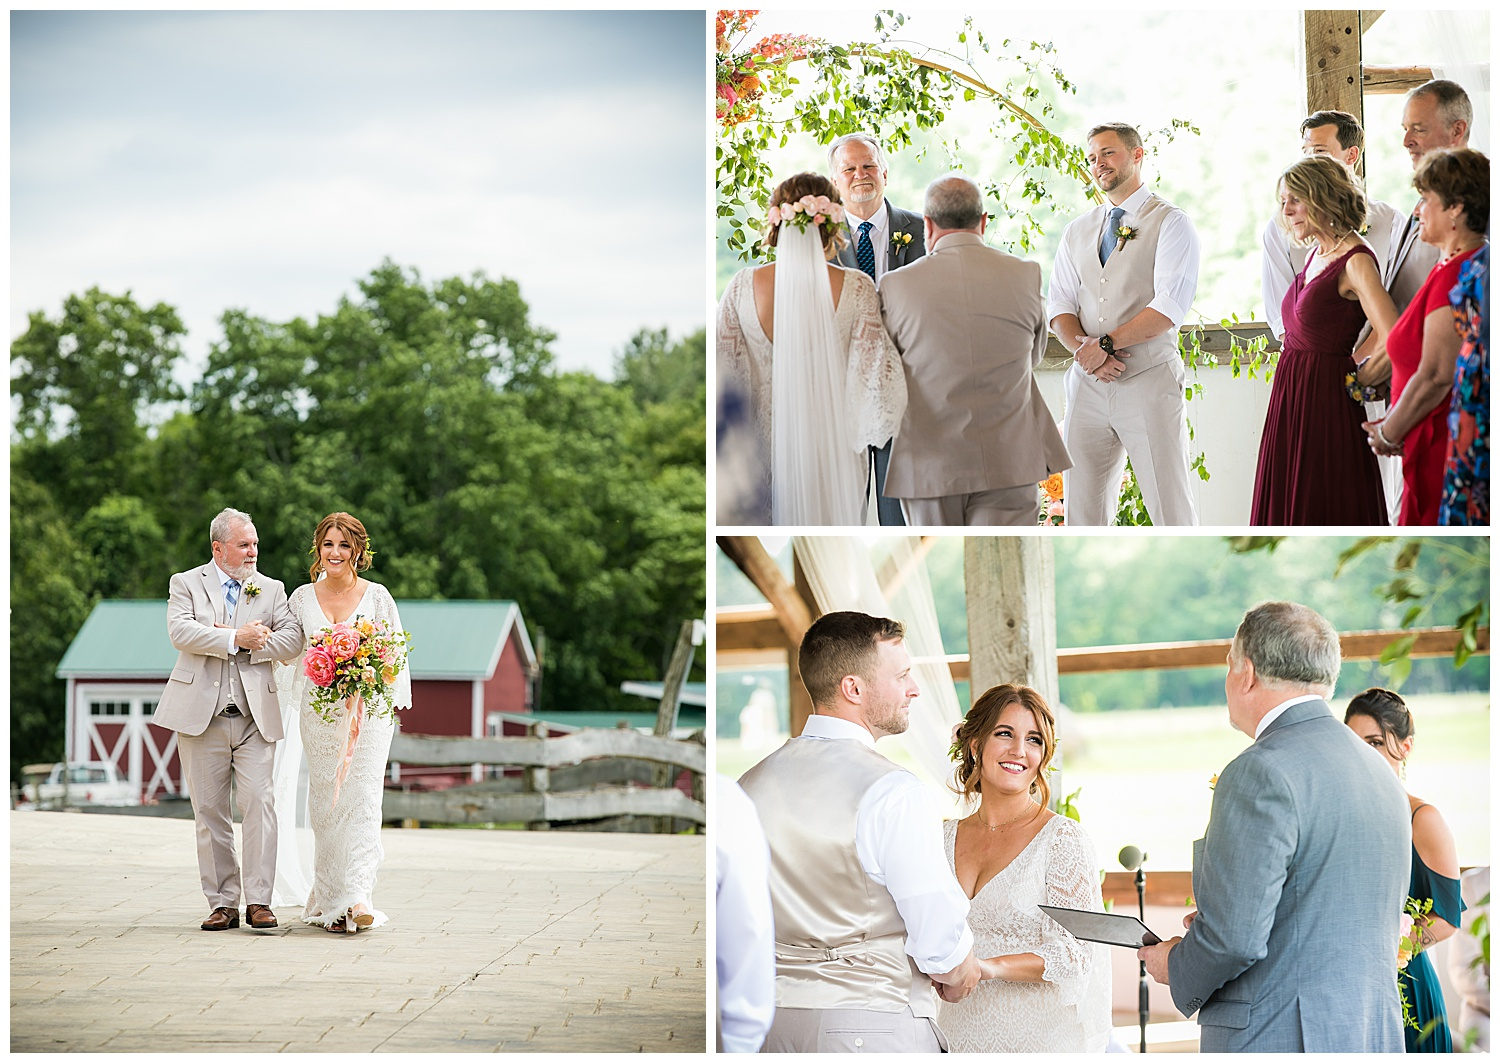 Valley View Farm Wedding - Ceremony